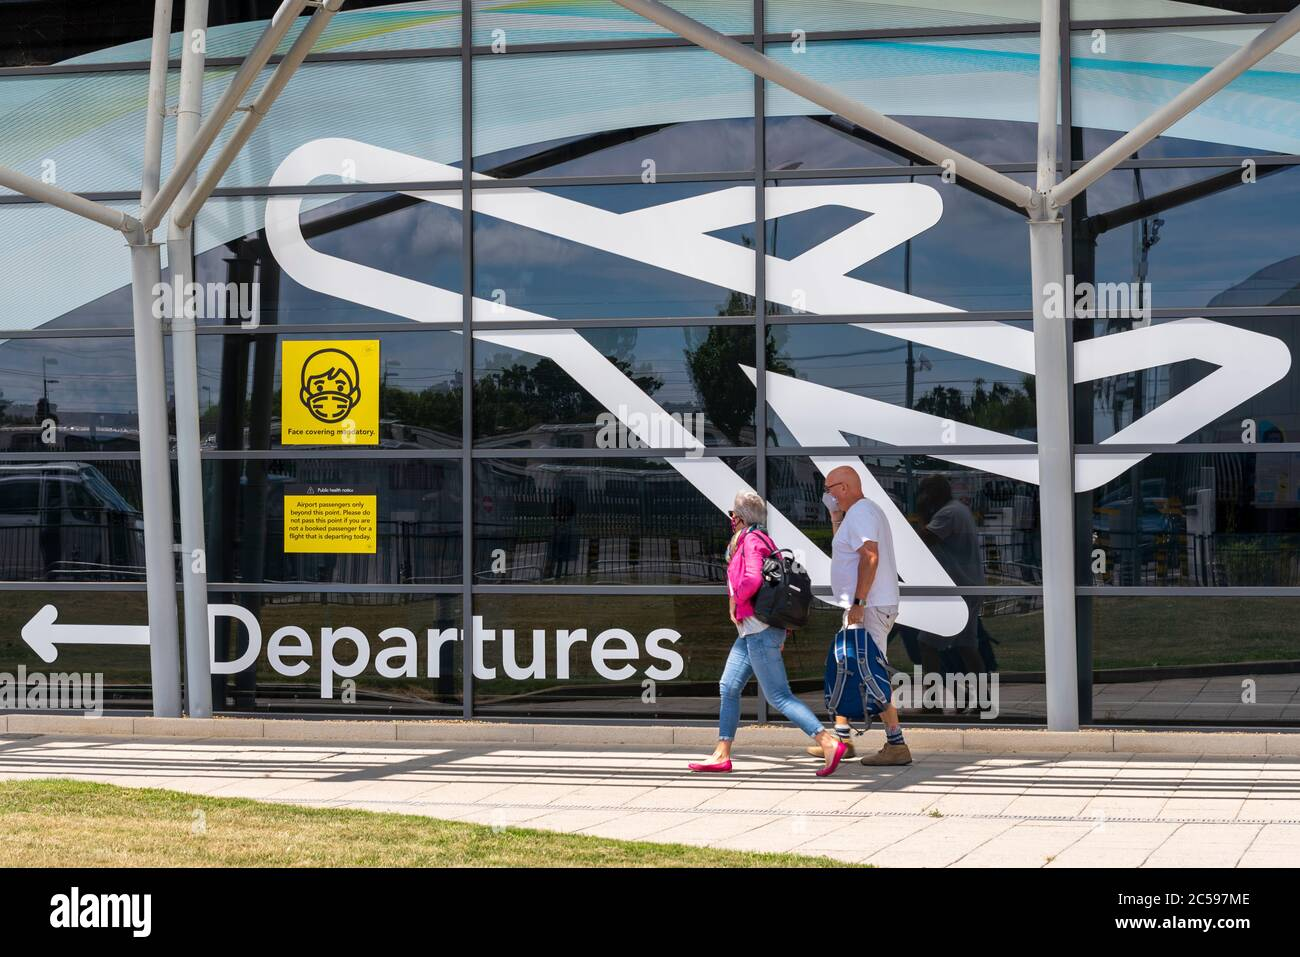 first-passenger-flight-from-london-southend-airport-essex-uk-after-the-covid-19-coronavirus-lockdown-people-arriving-at-departures-terminal-masks-2C597ME.jpg